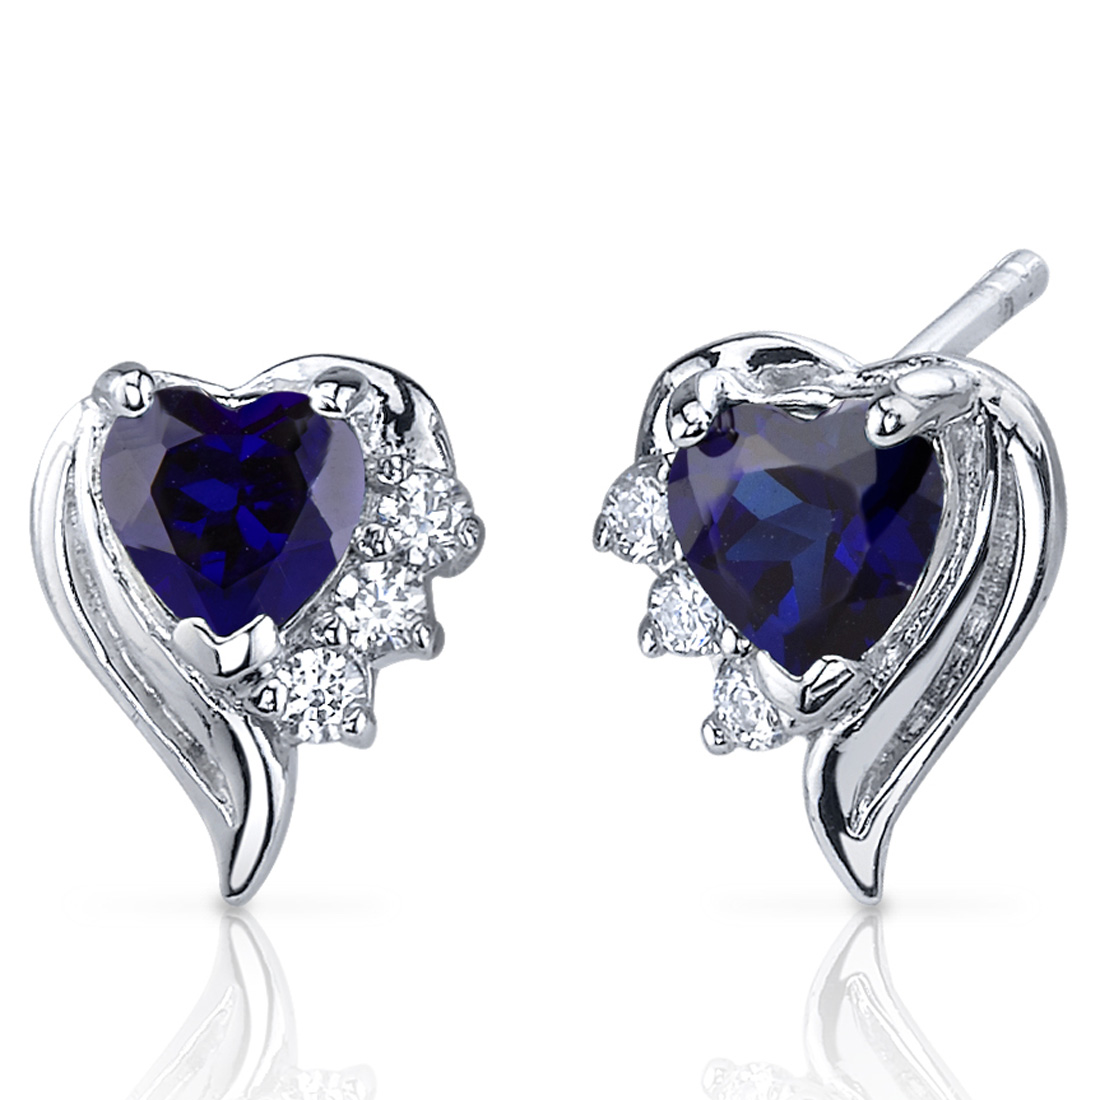 1.50 Ct Heart Shape Created Blue Sapphire CZ Accent Sterling Silver Stud Earrings Rhodium Finish